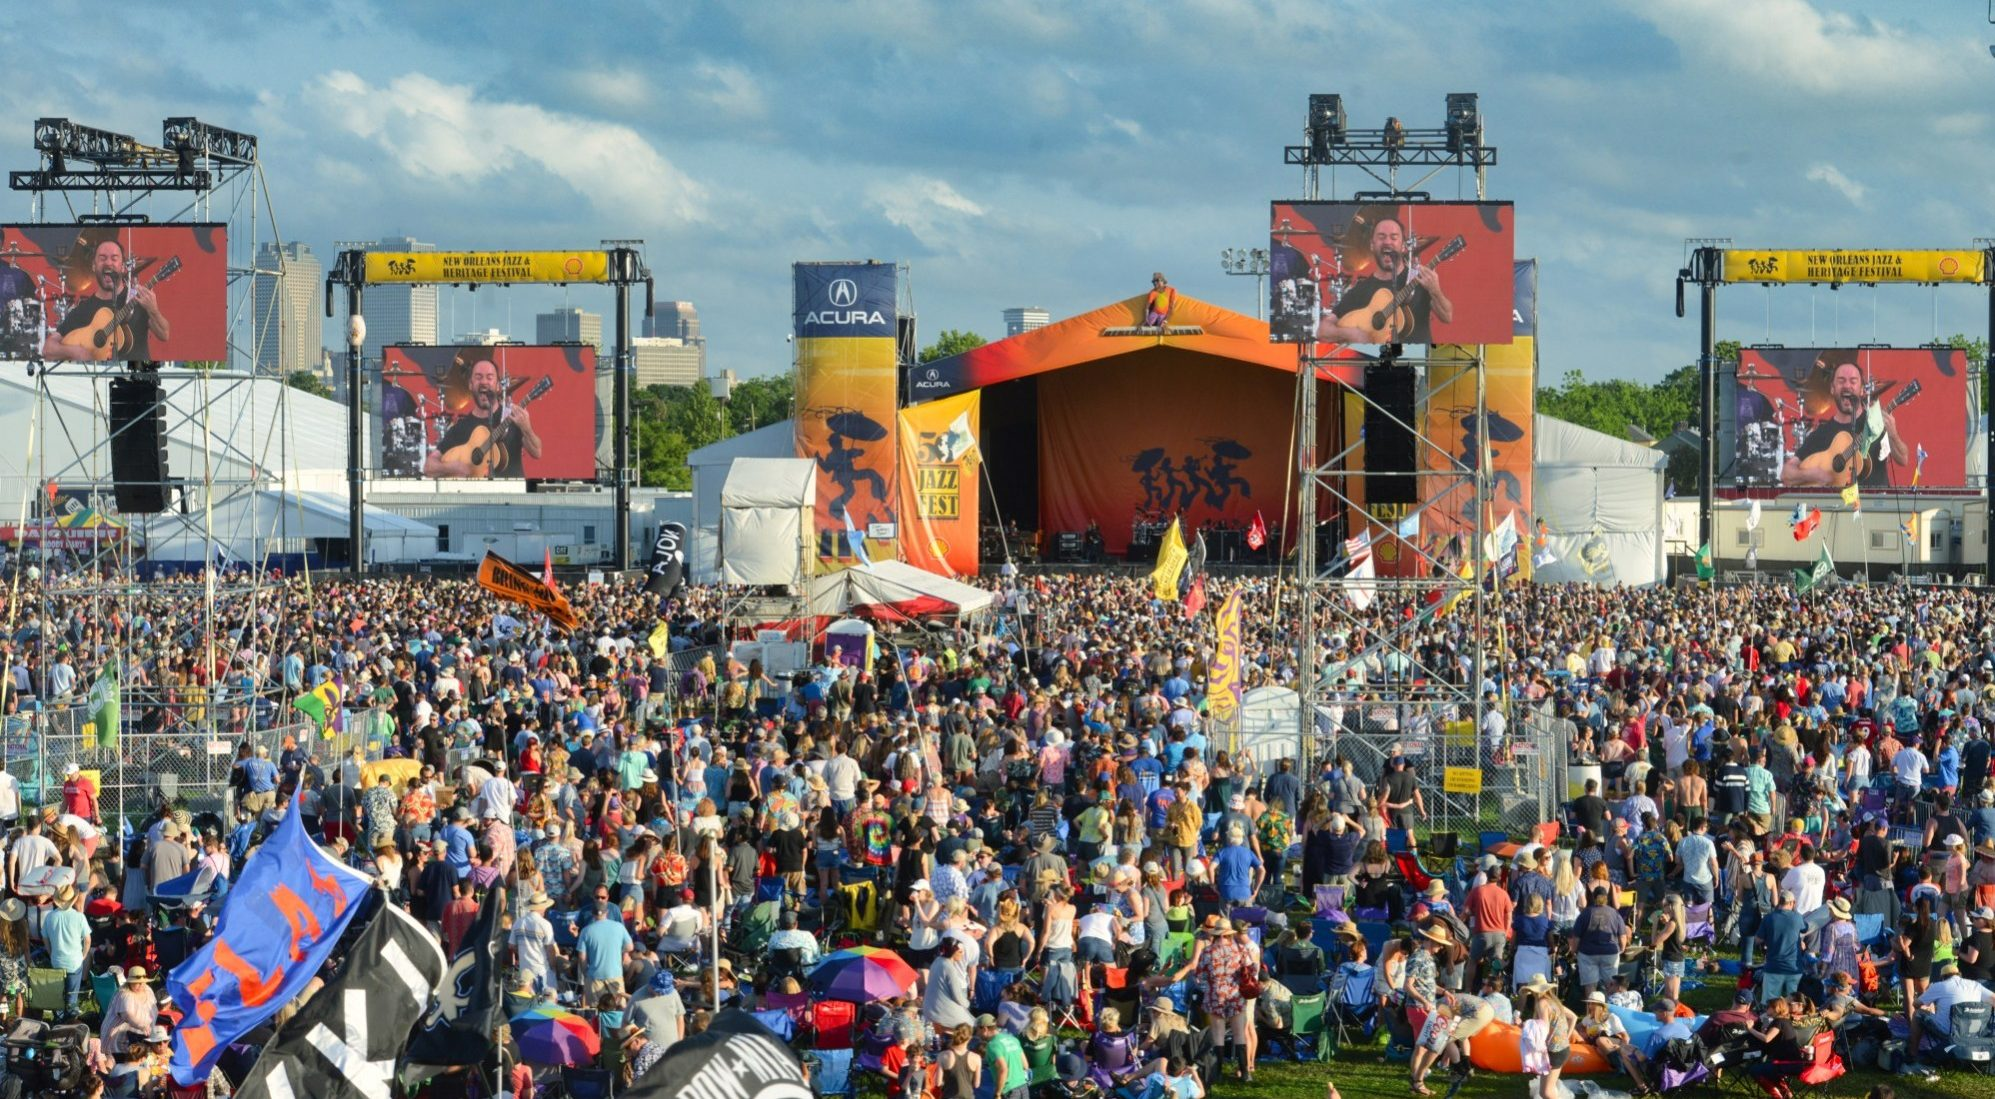 Jazz Fest New Orleans 2020 New Orleans Jazz Fest To Keep Newly Added 8th Day In 2020